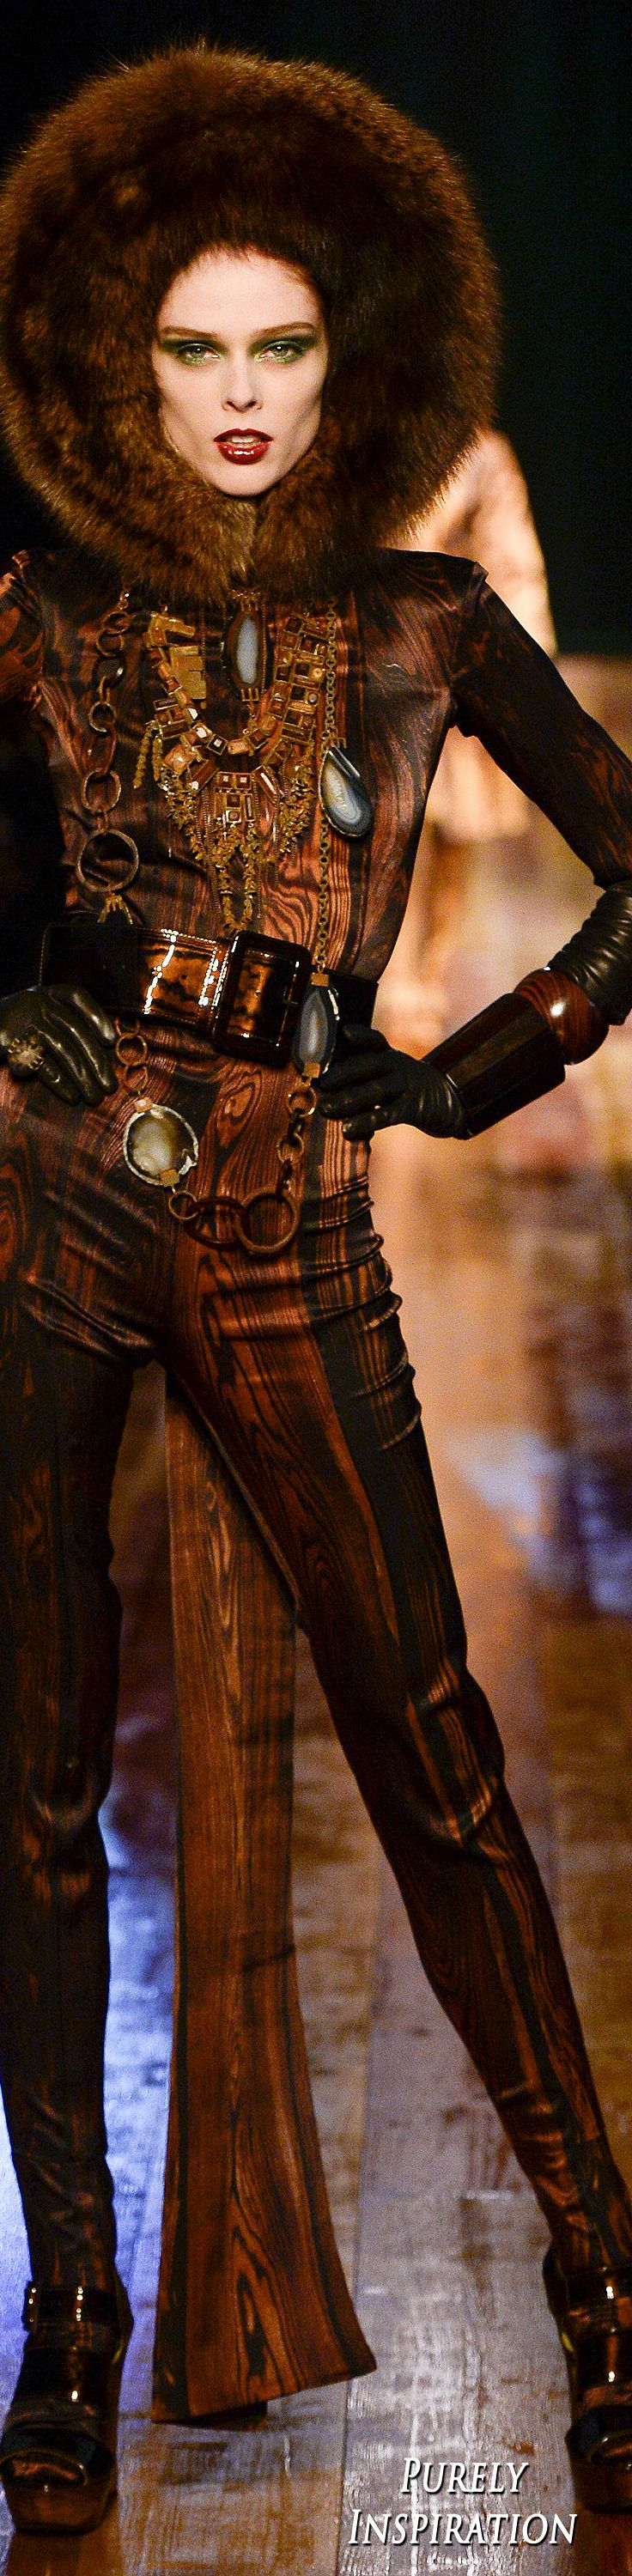 Jean Paul Gaultier 2016 Fall Haute Couture | Purely Inspiration